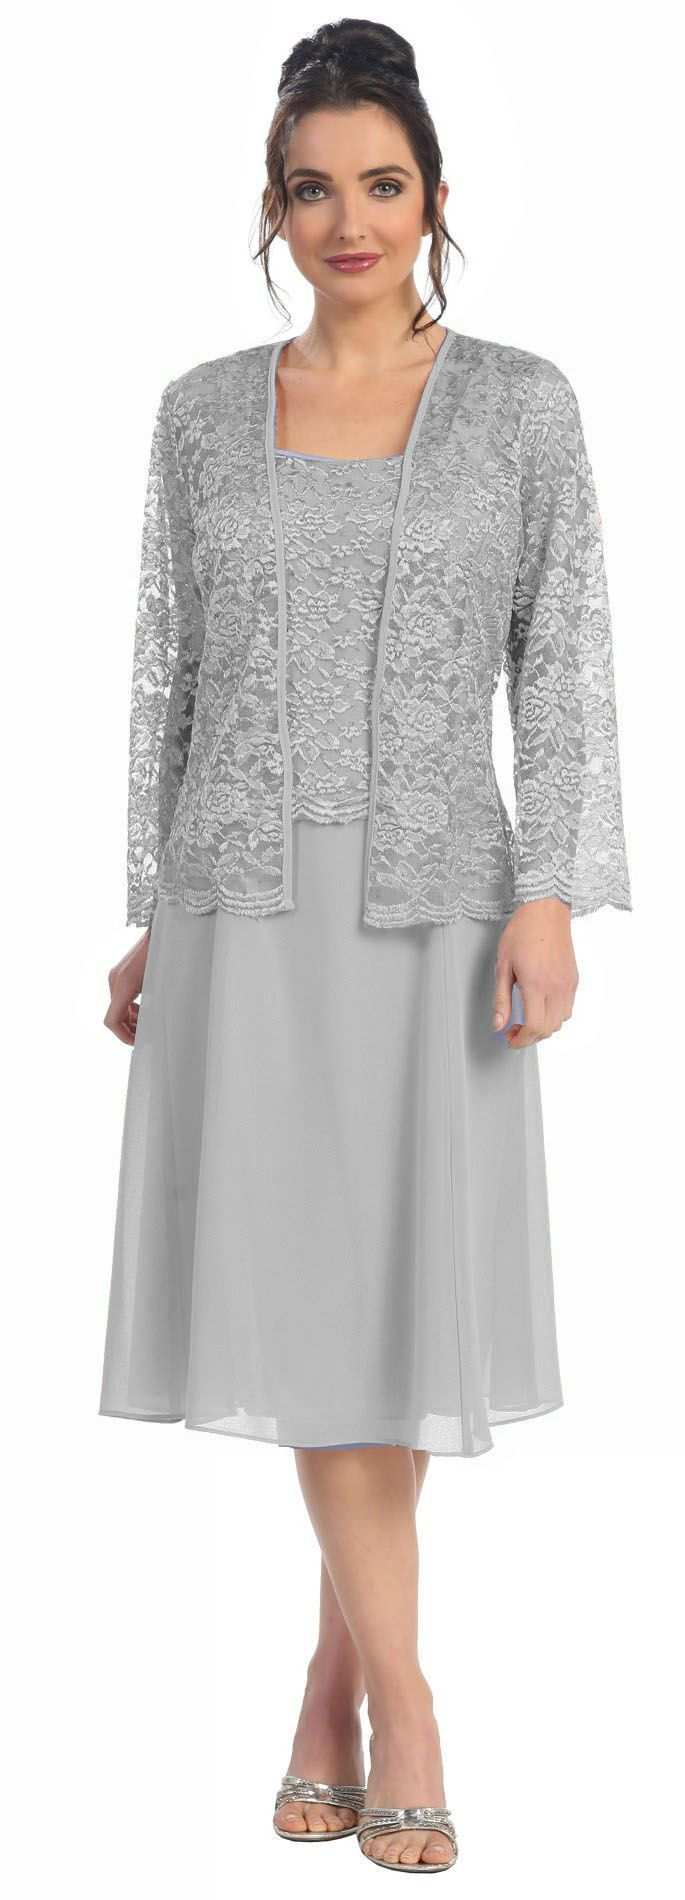 Grandmother of the bride dresses evening wedding outfit for Dress and jacket outfits for weddings